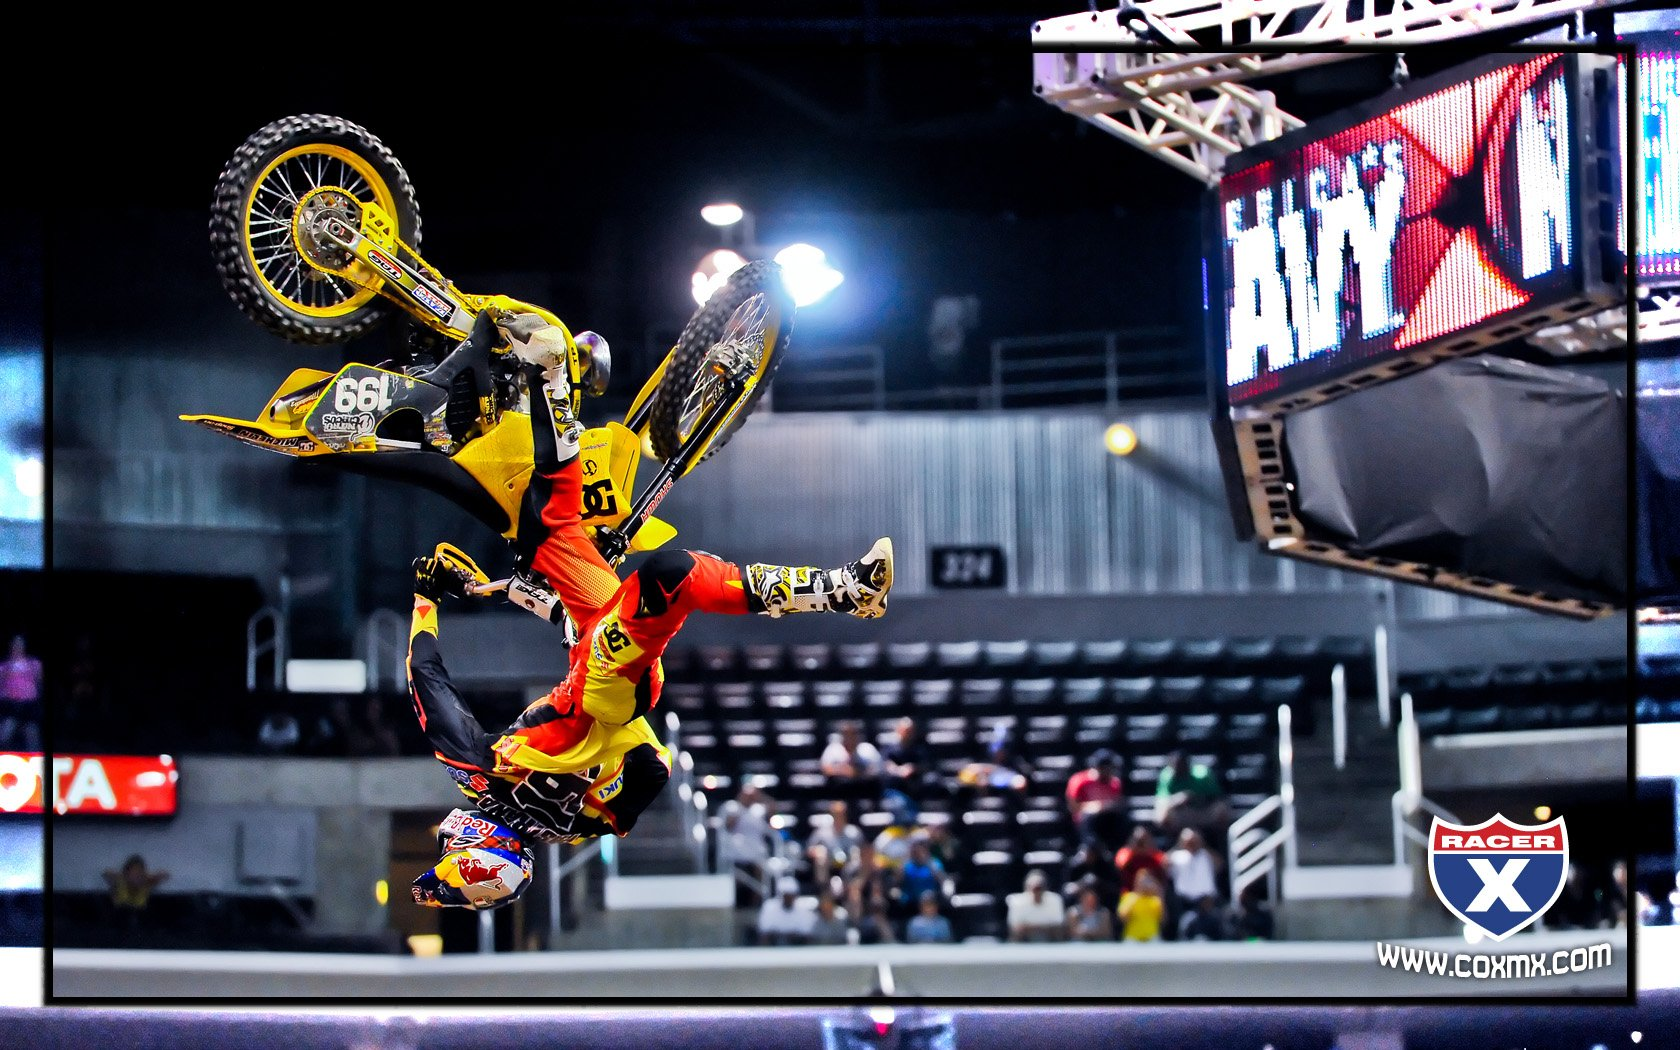 X games wallpapers racer x online pastrana pastrana throws a nac nac flip in speed style voltagebd Image collections